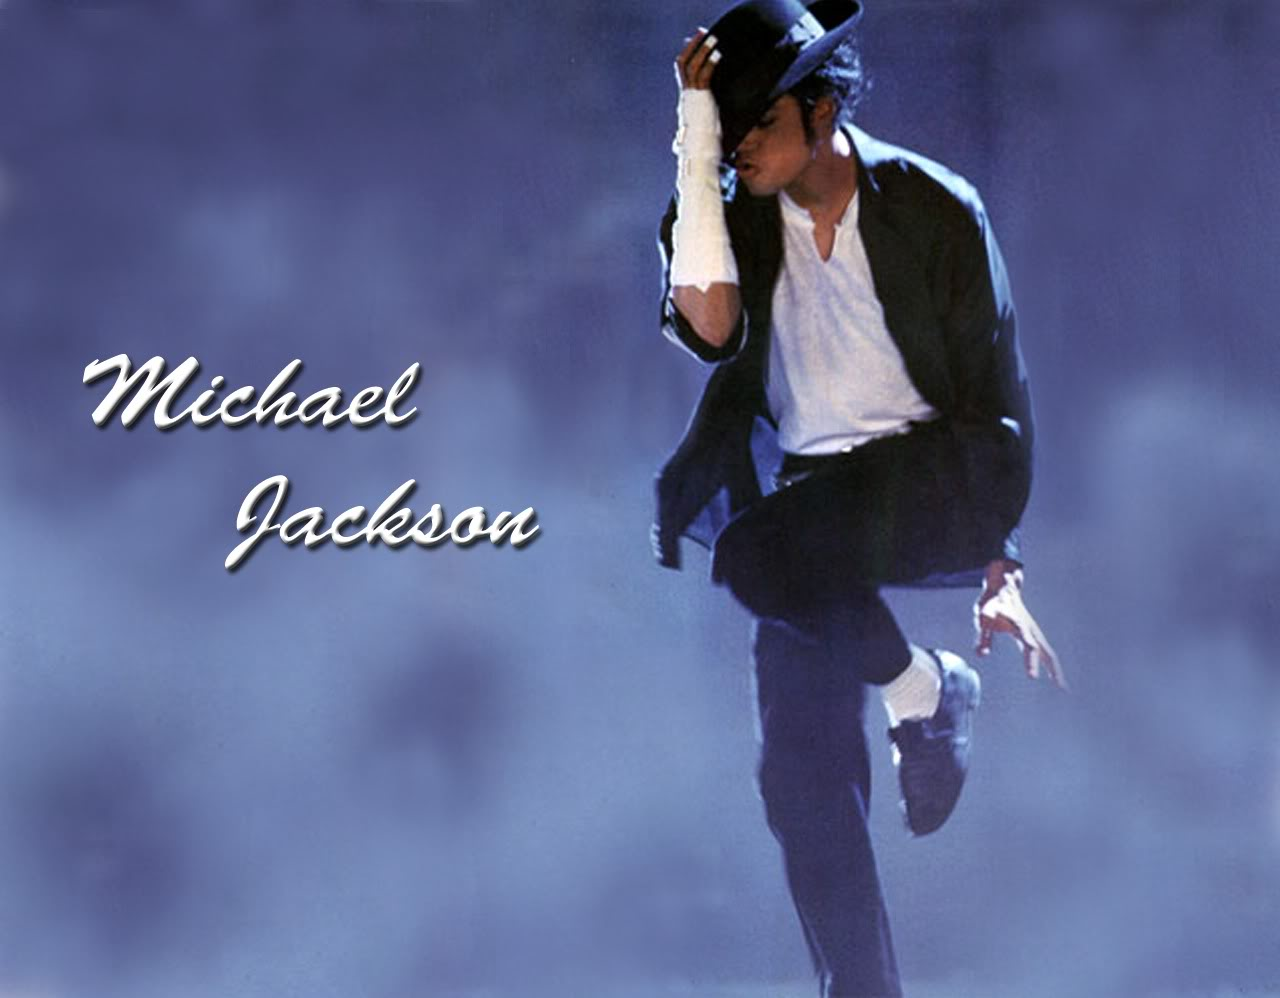 iphone wallpaper michael jackson wallpaper pinterest 1280x998